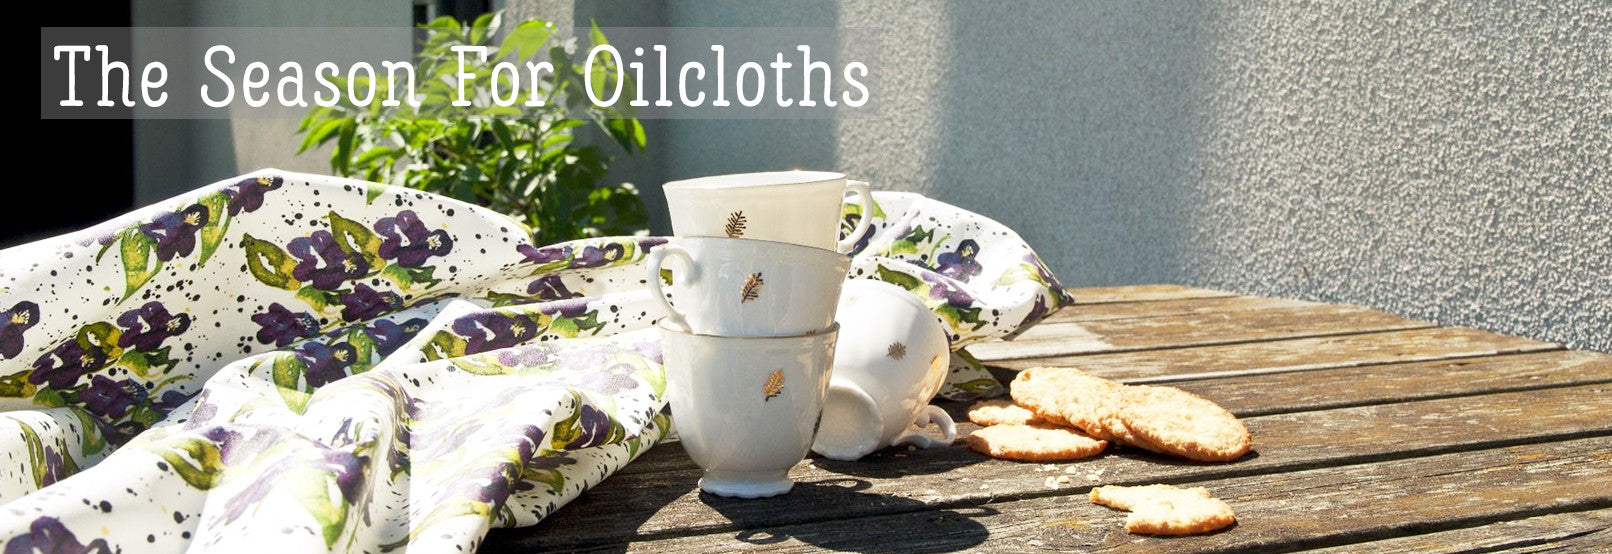 The Season For Oilcloths